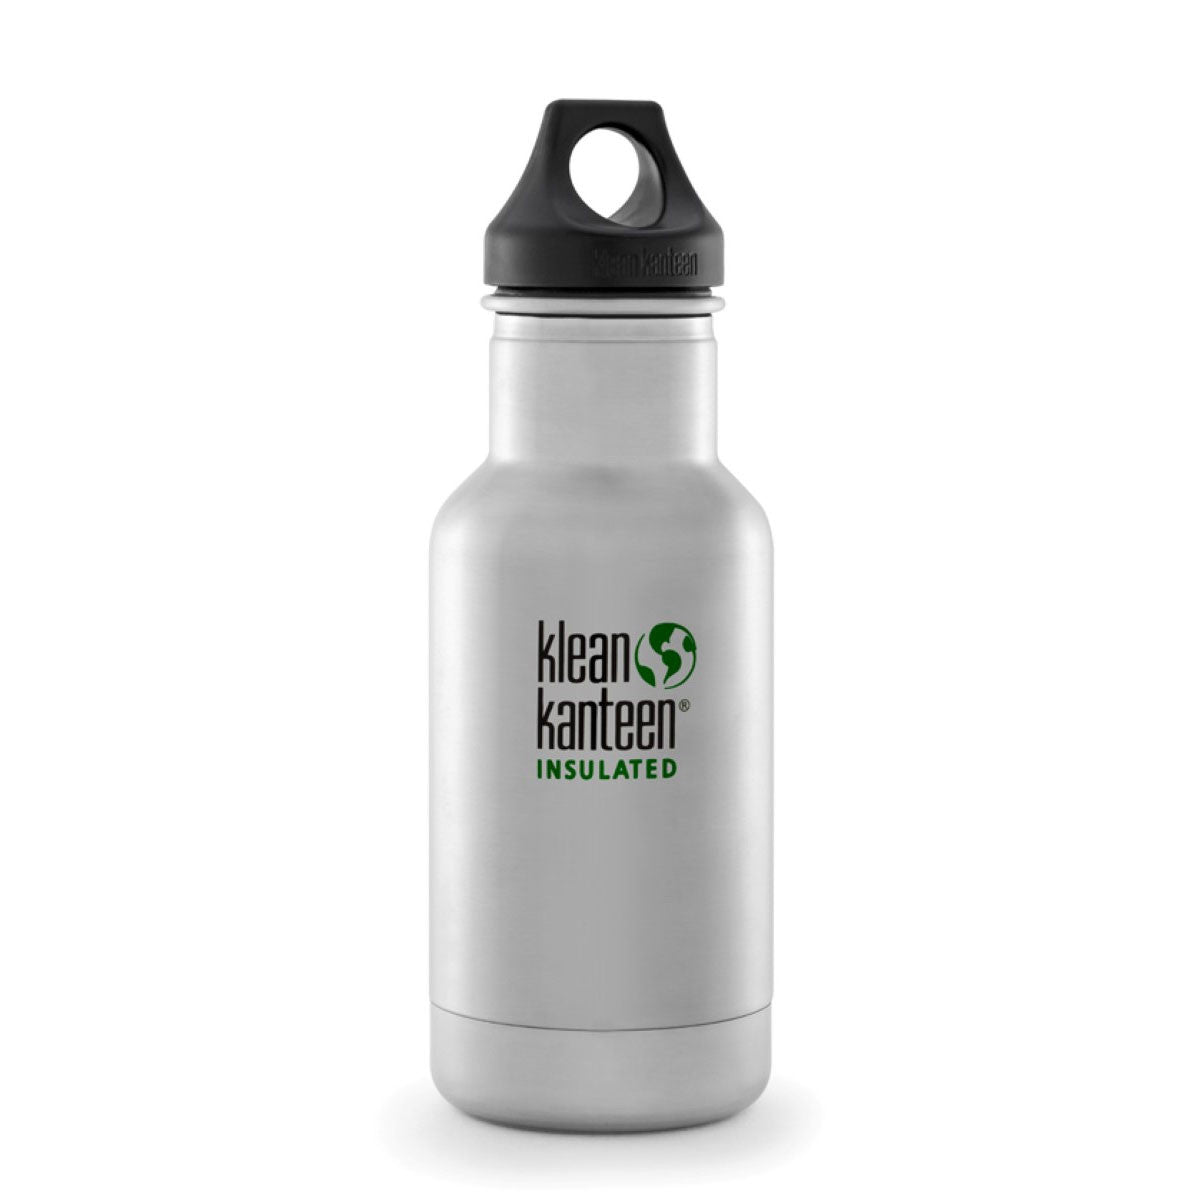 Klean Kanteen Stainless Steel Insulated Classic Water Bottle  355ml 12oz / Brushed Stainless - Klean Kanteen - Little Earth Nest - 8